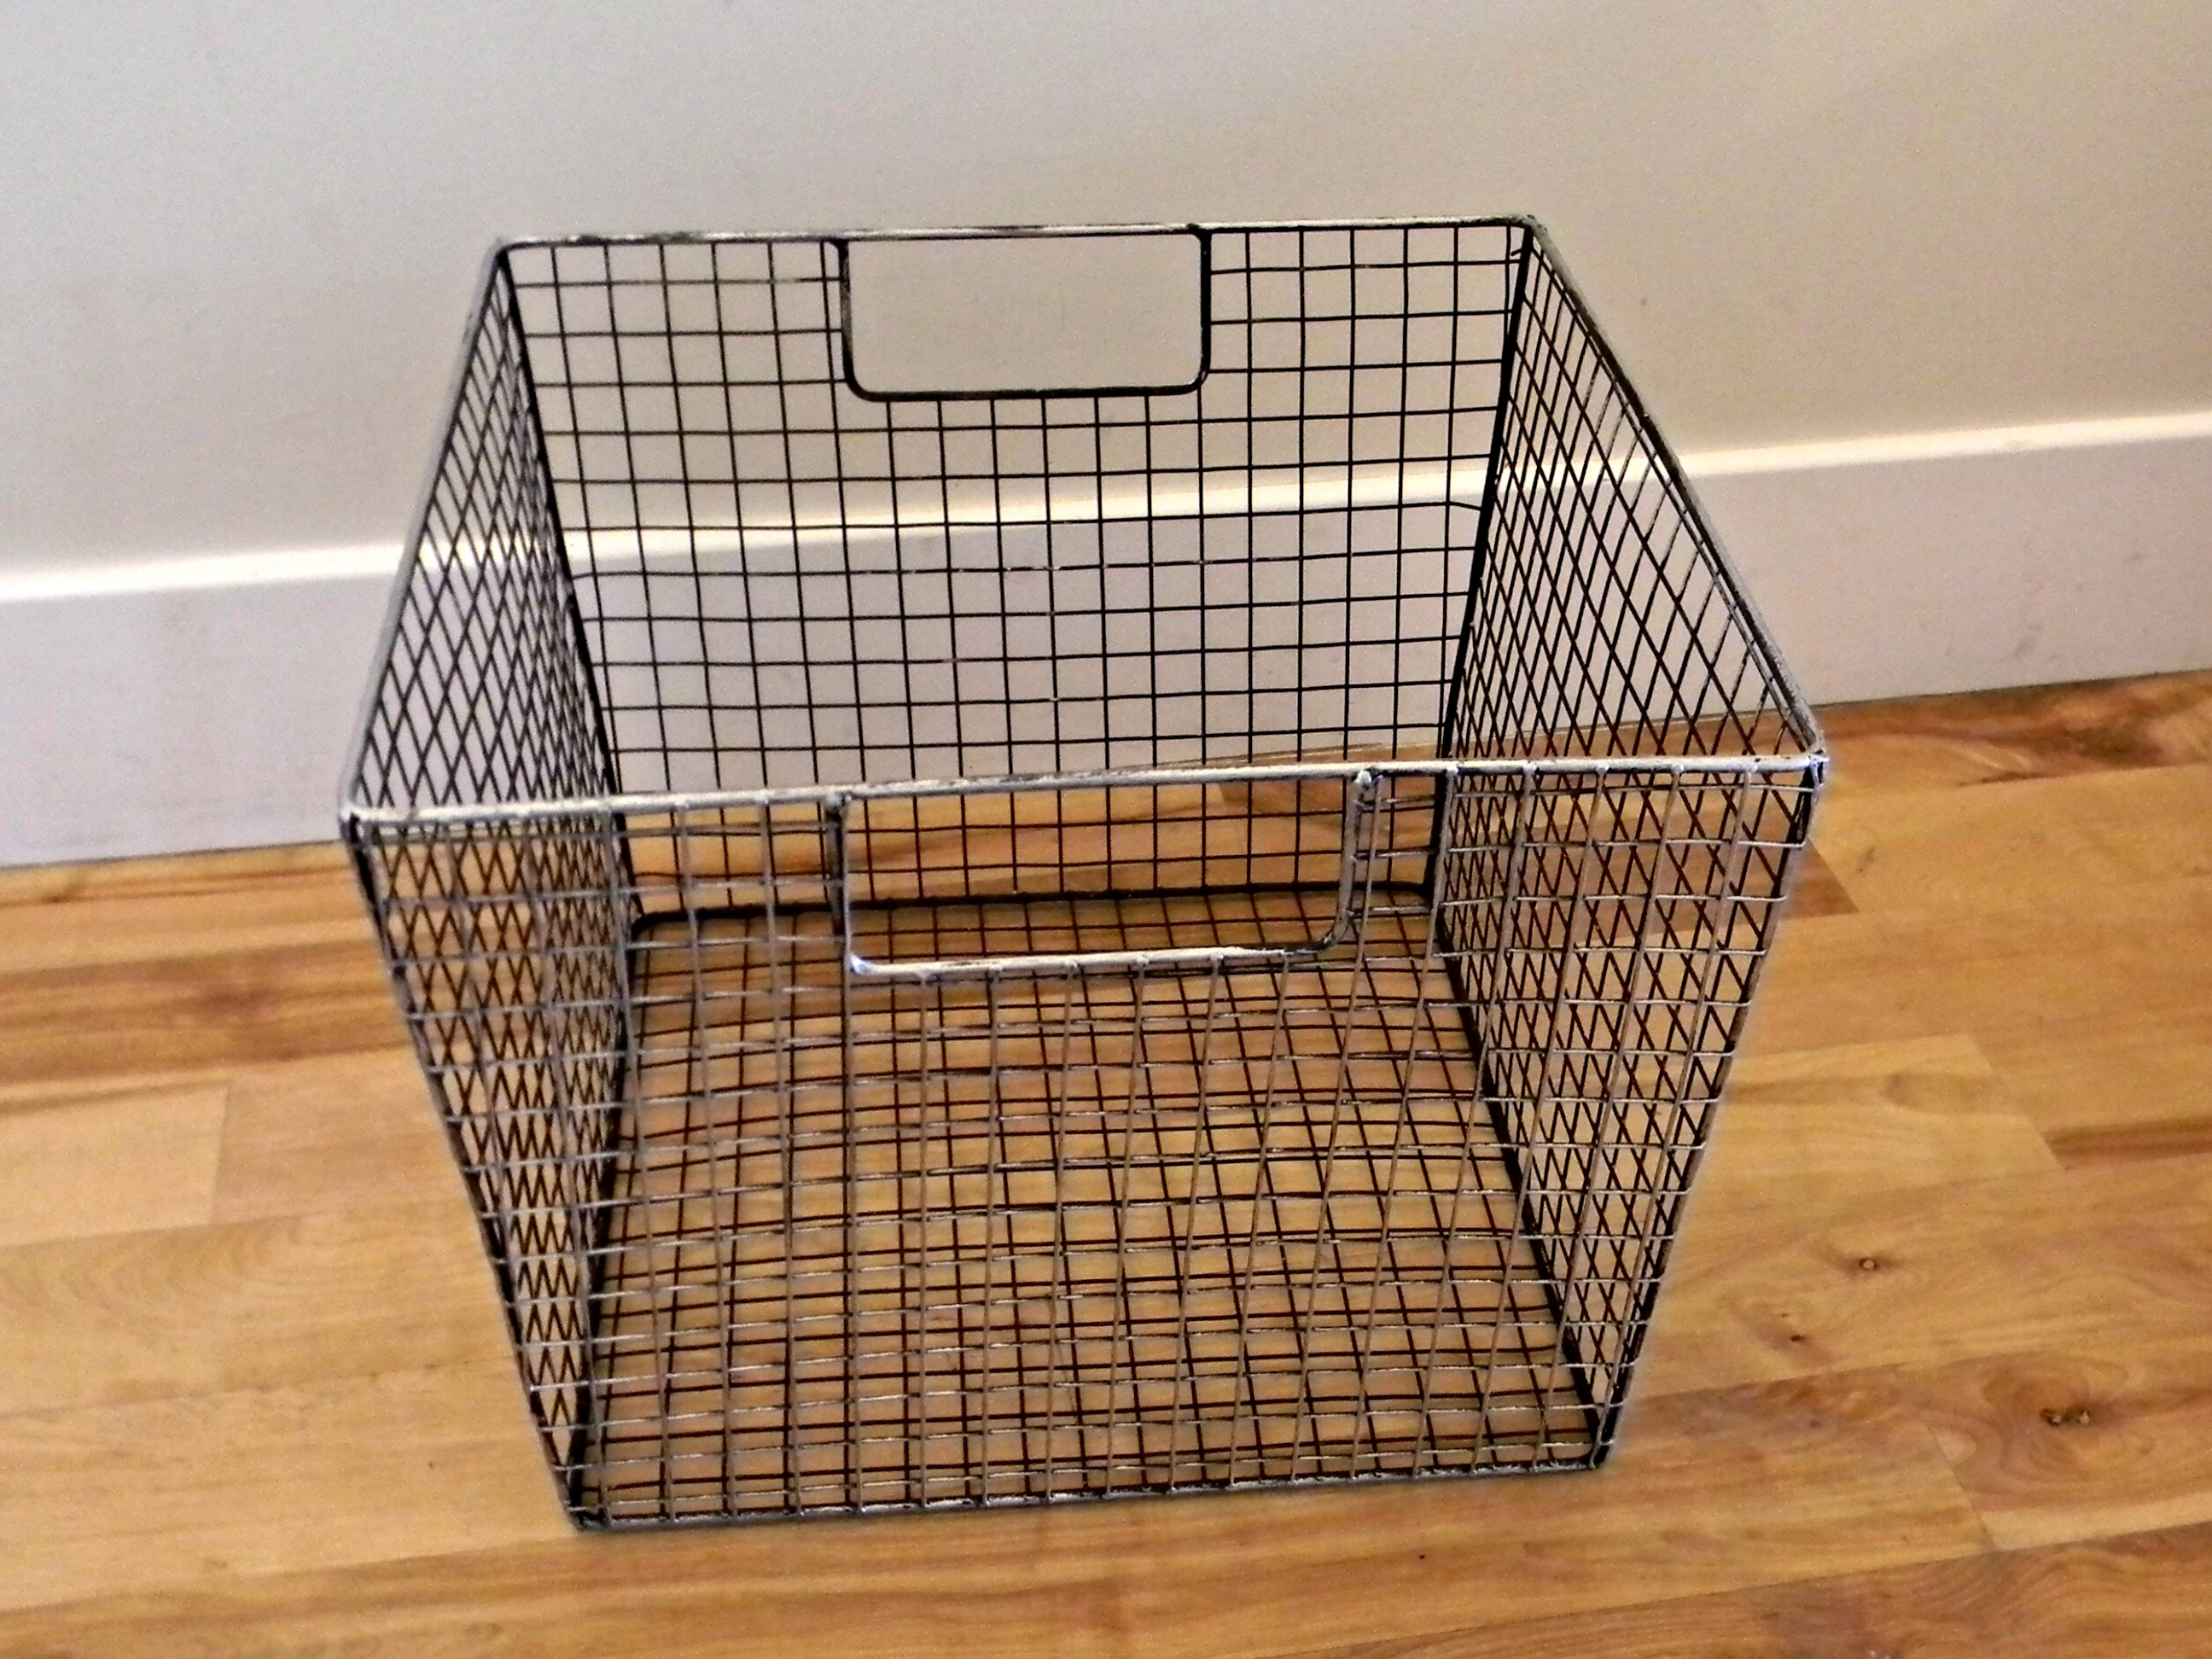 Metal Basket With Holes : Wire basket for flip flops organize and decorate everything